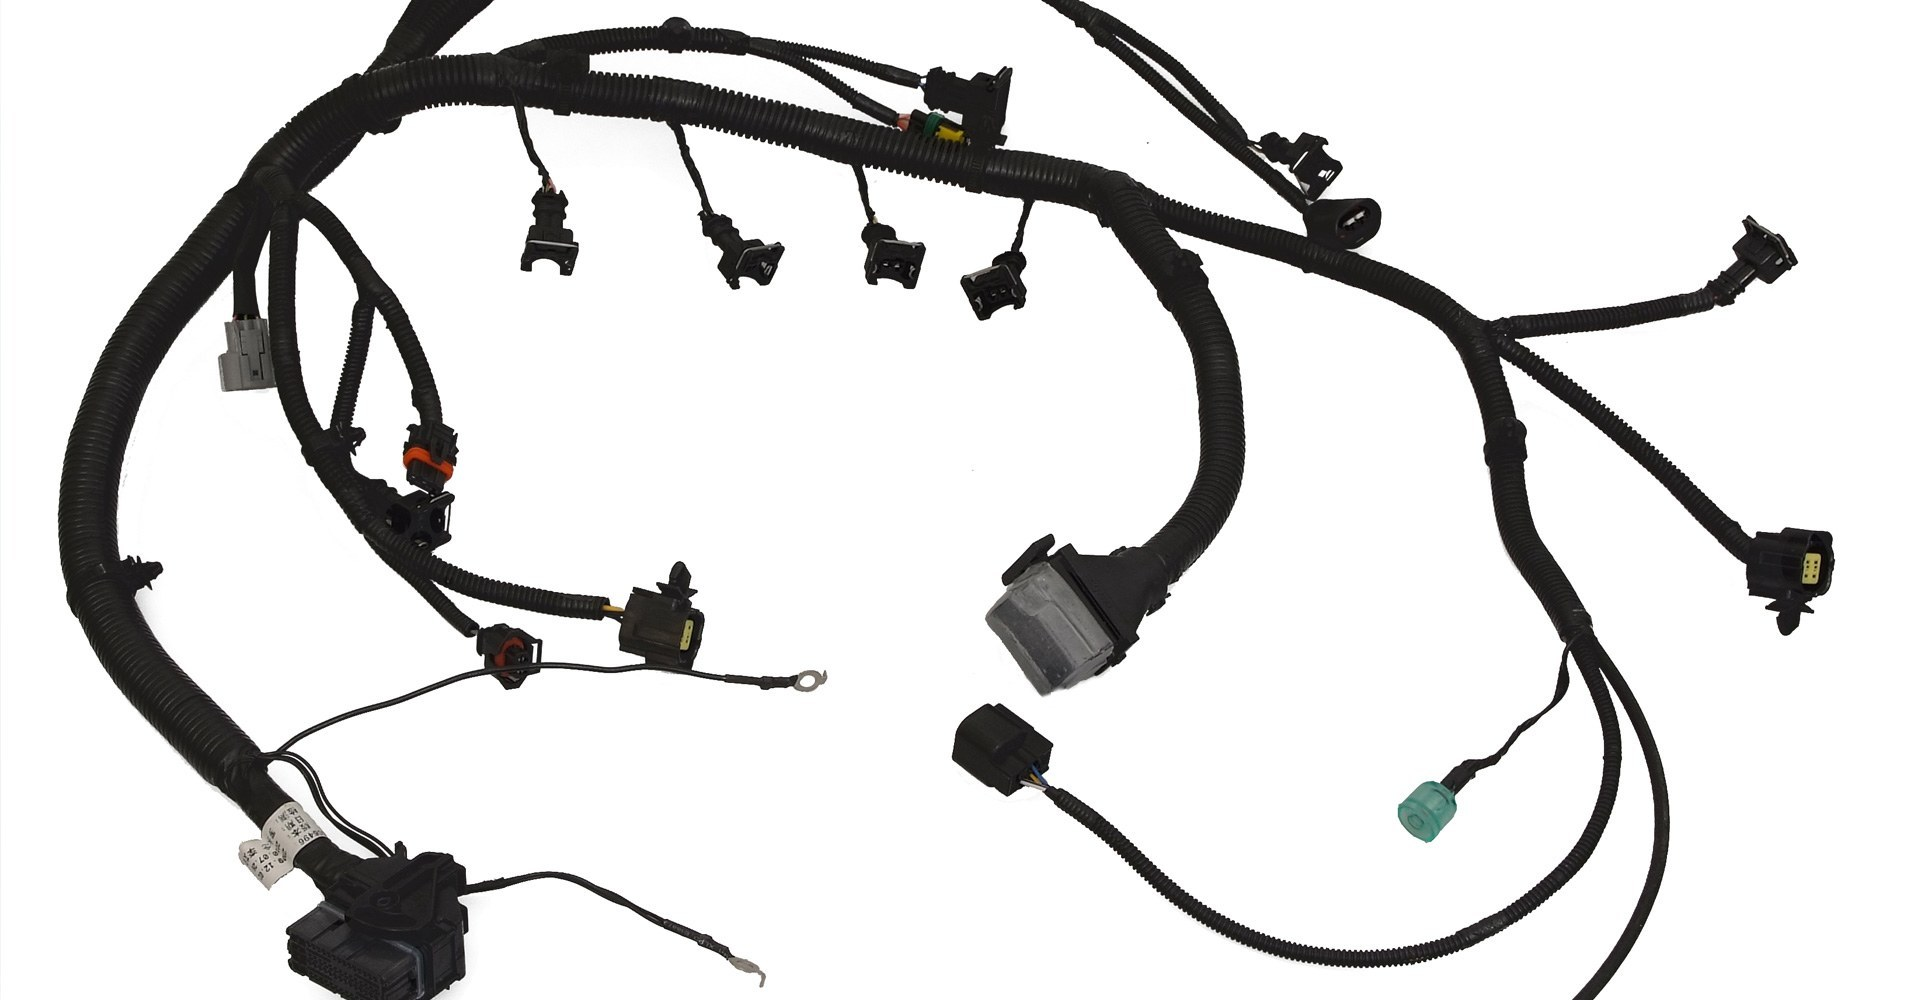 wireharness automotive wire harness products lorom automobile wire harness at edmiracle.co